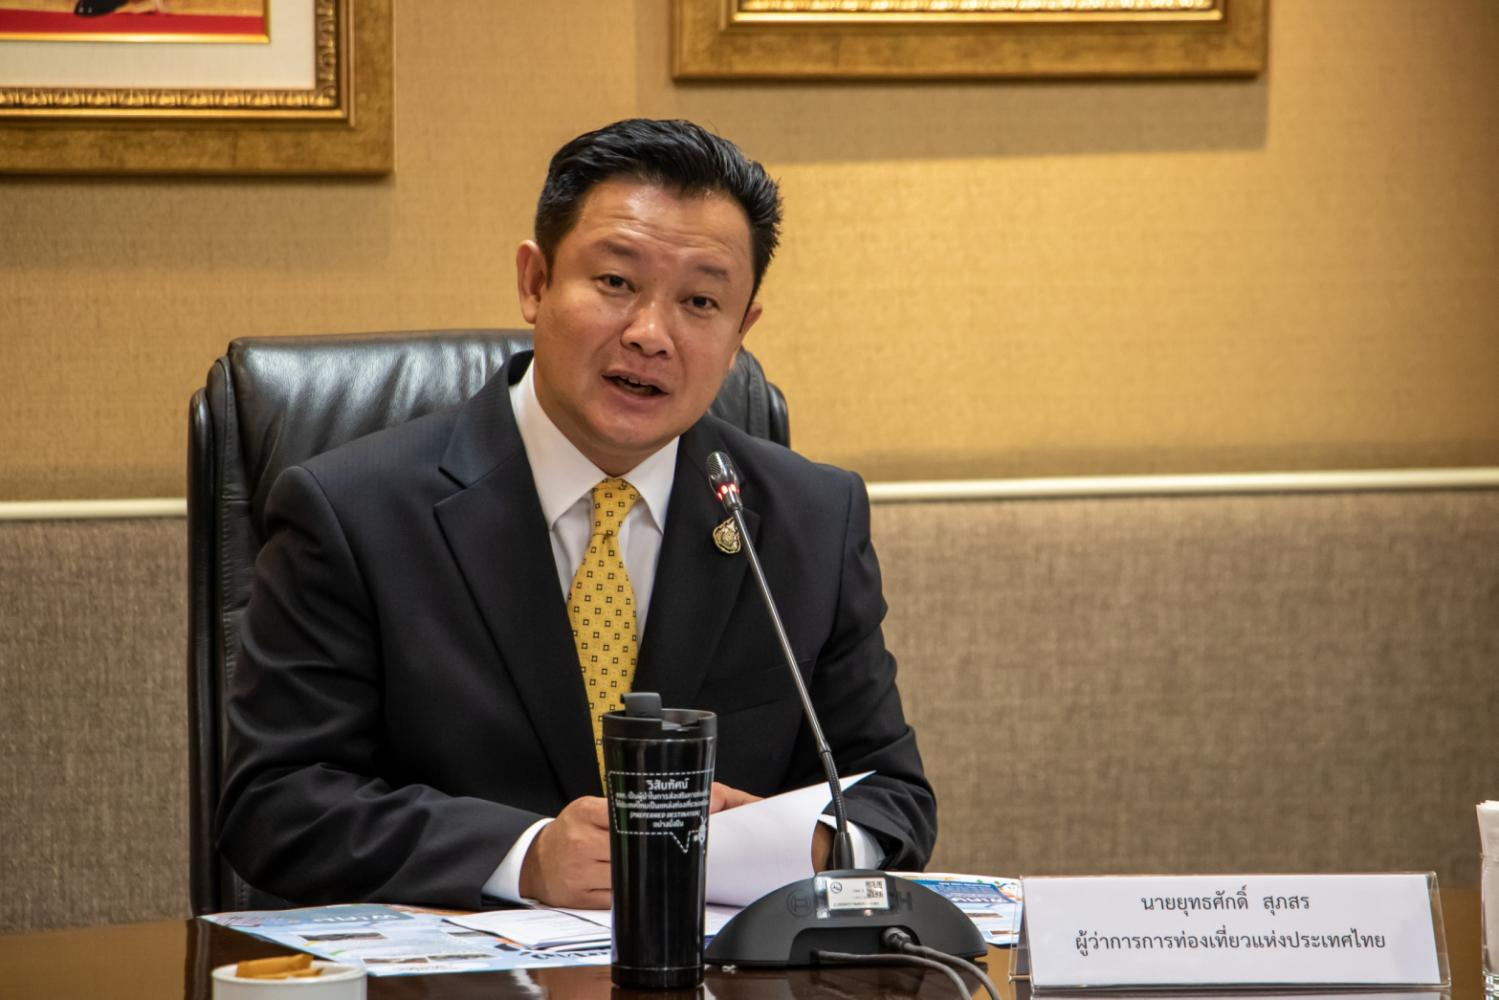 Tourism Authority of Thailand governor Yuthasak Supasorn